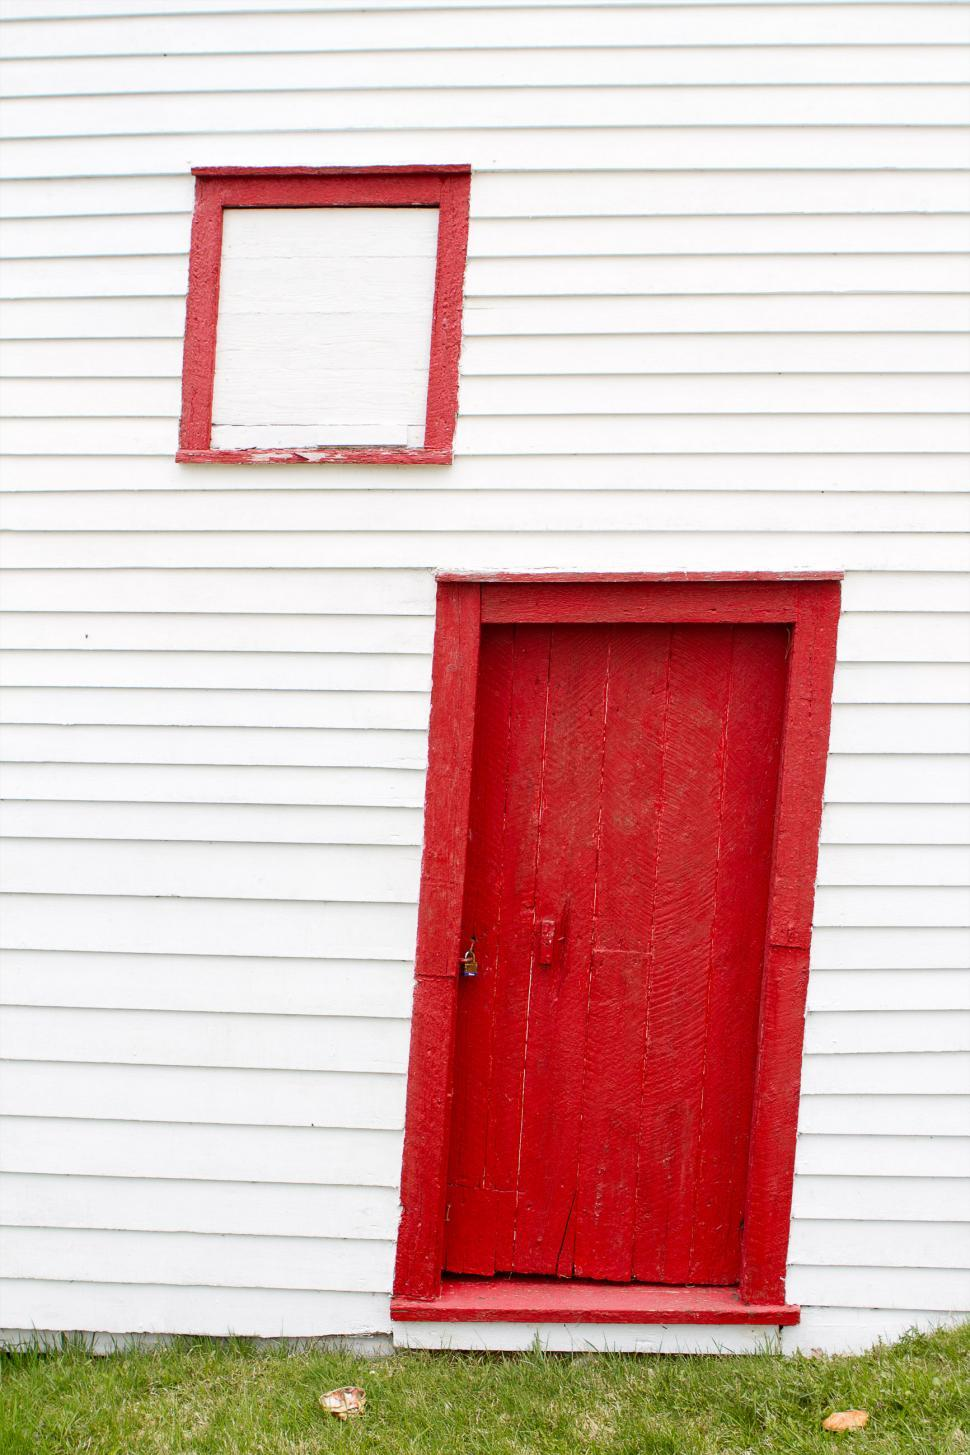 Download Free Stock HD Photo of Wall with door and window. Online